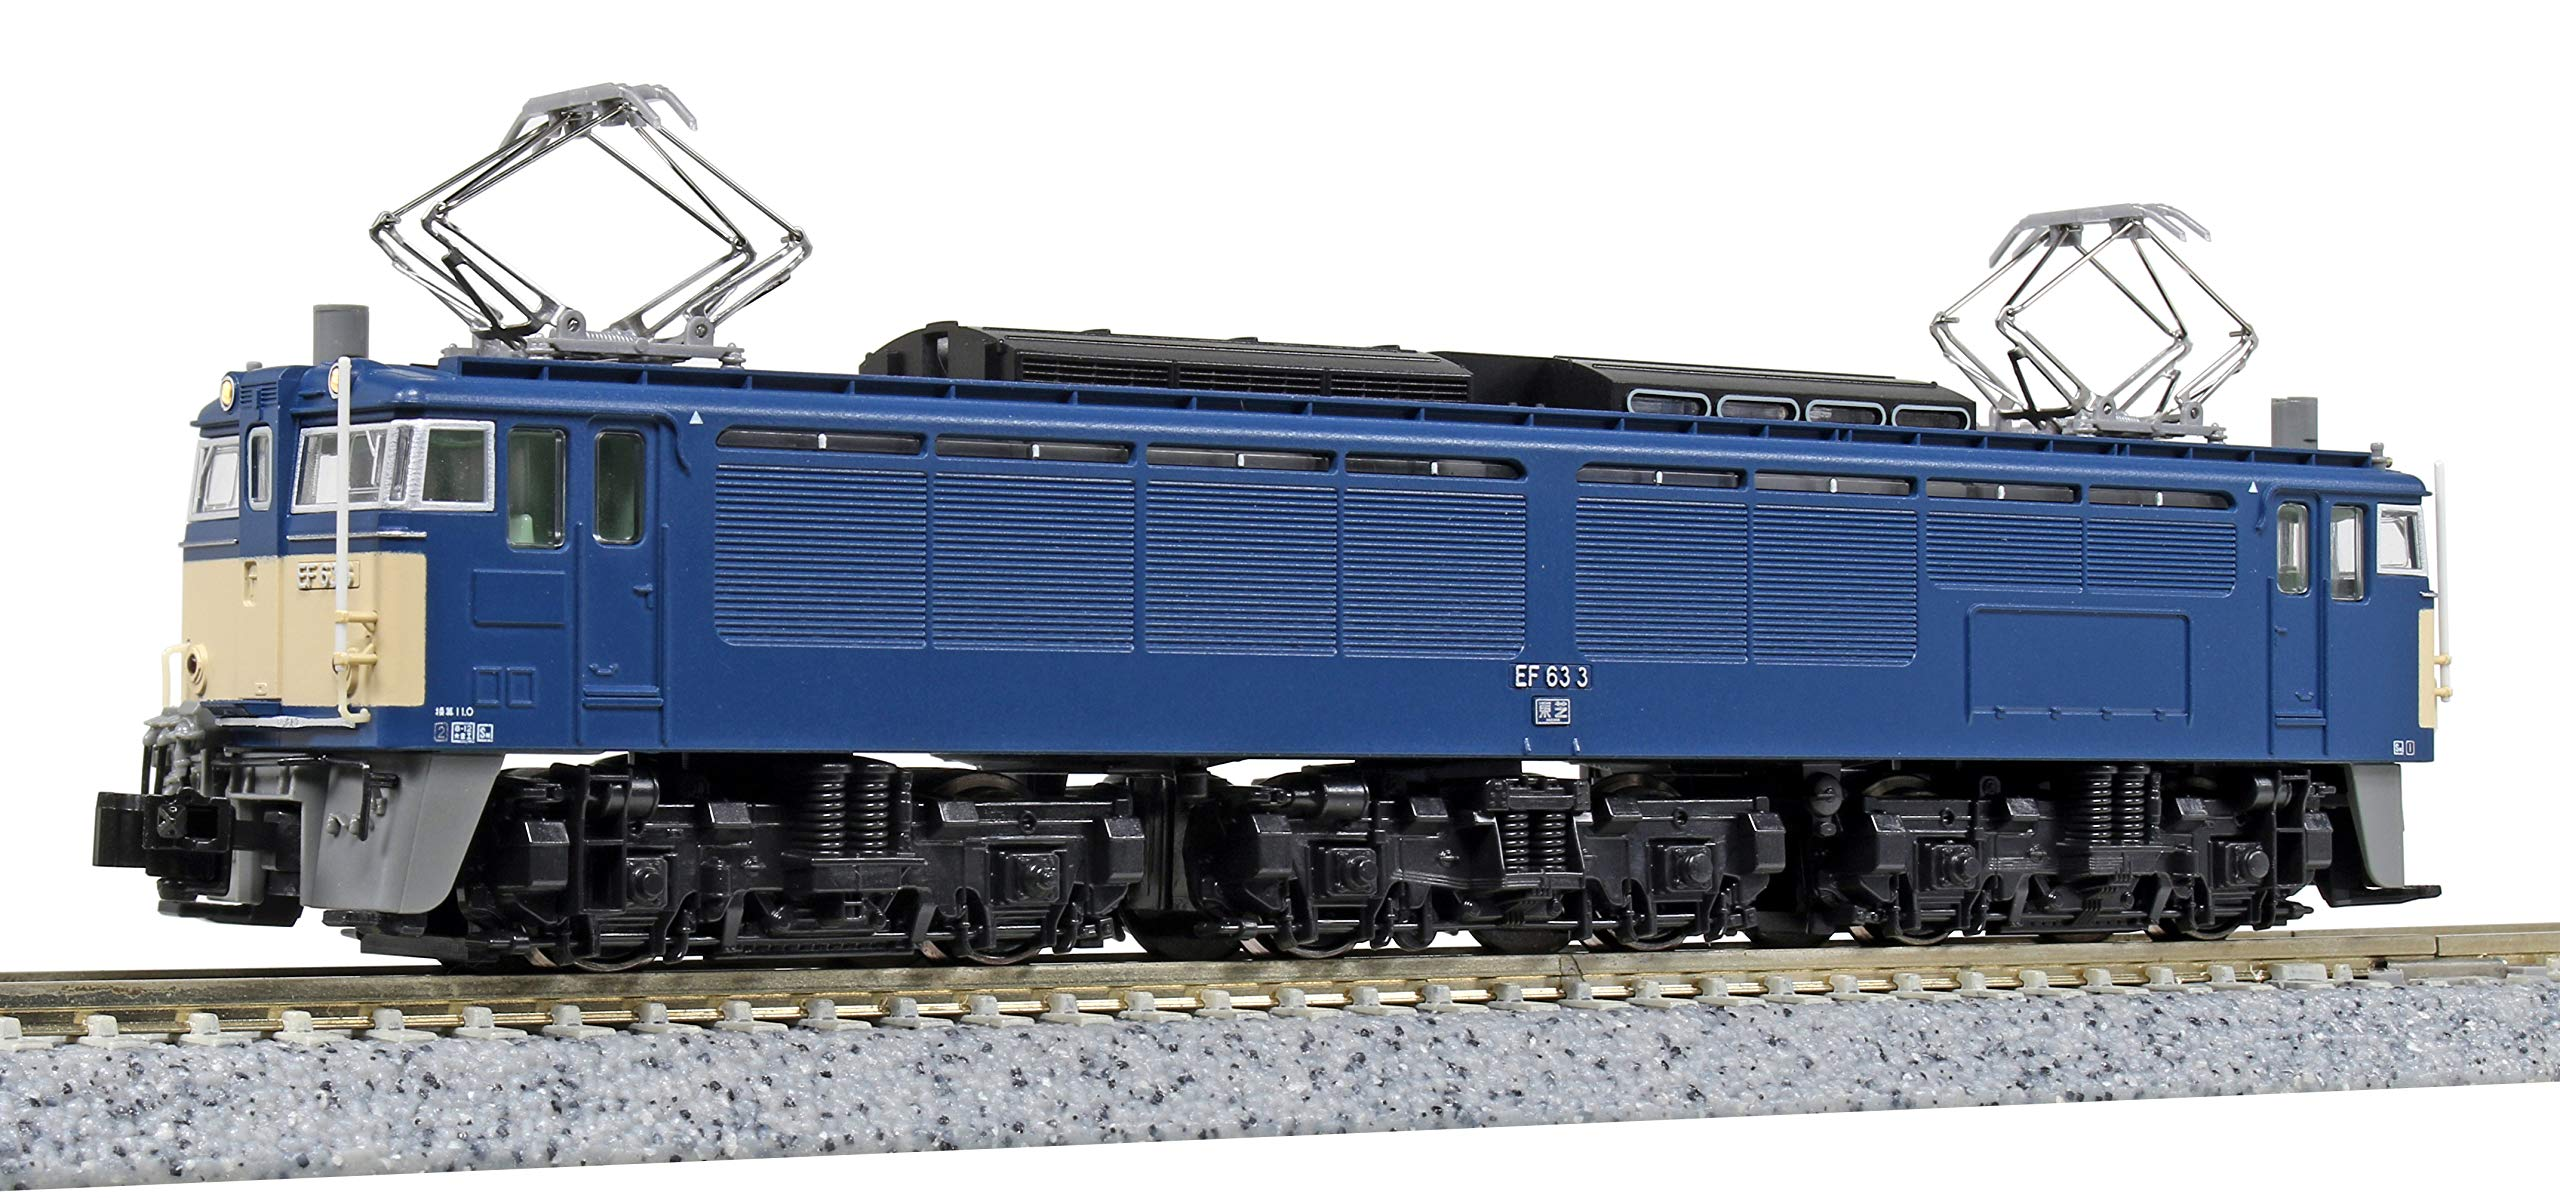 Kato 3085-1 Electric Locomotive EF63 1 Type N Scale 1/150